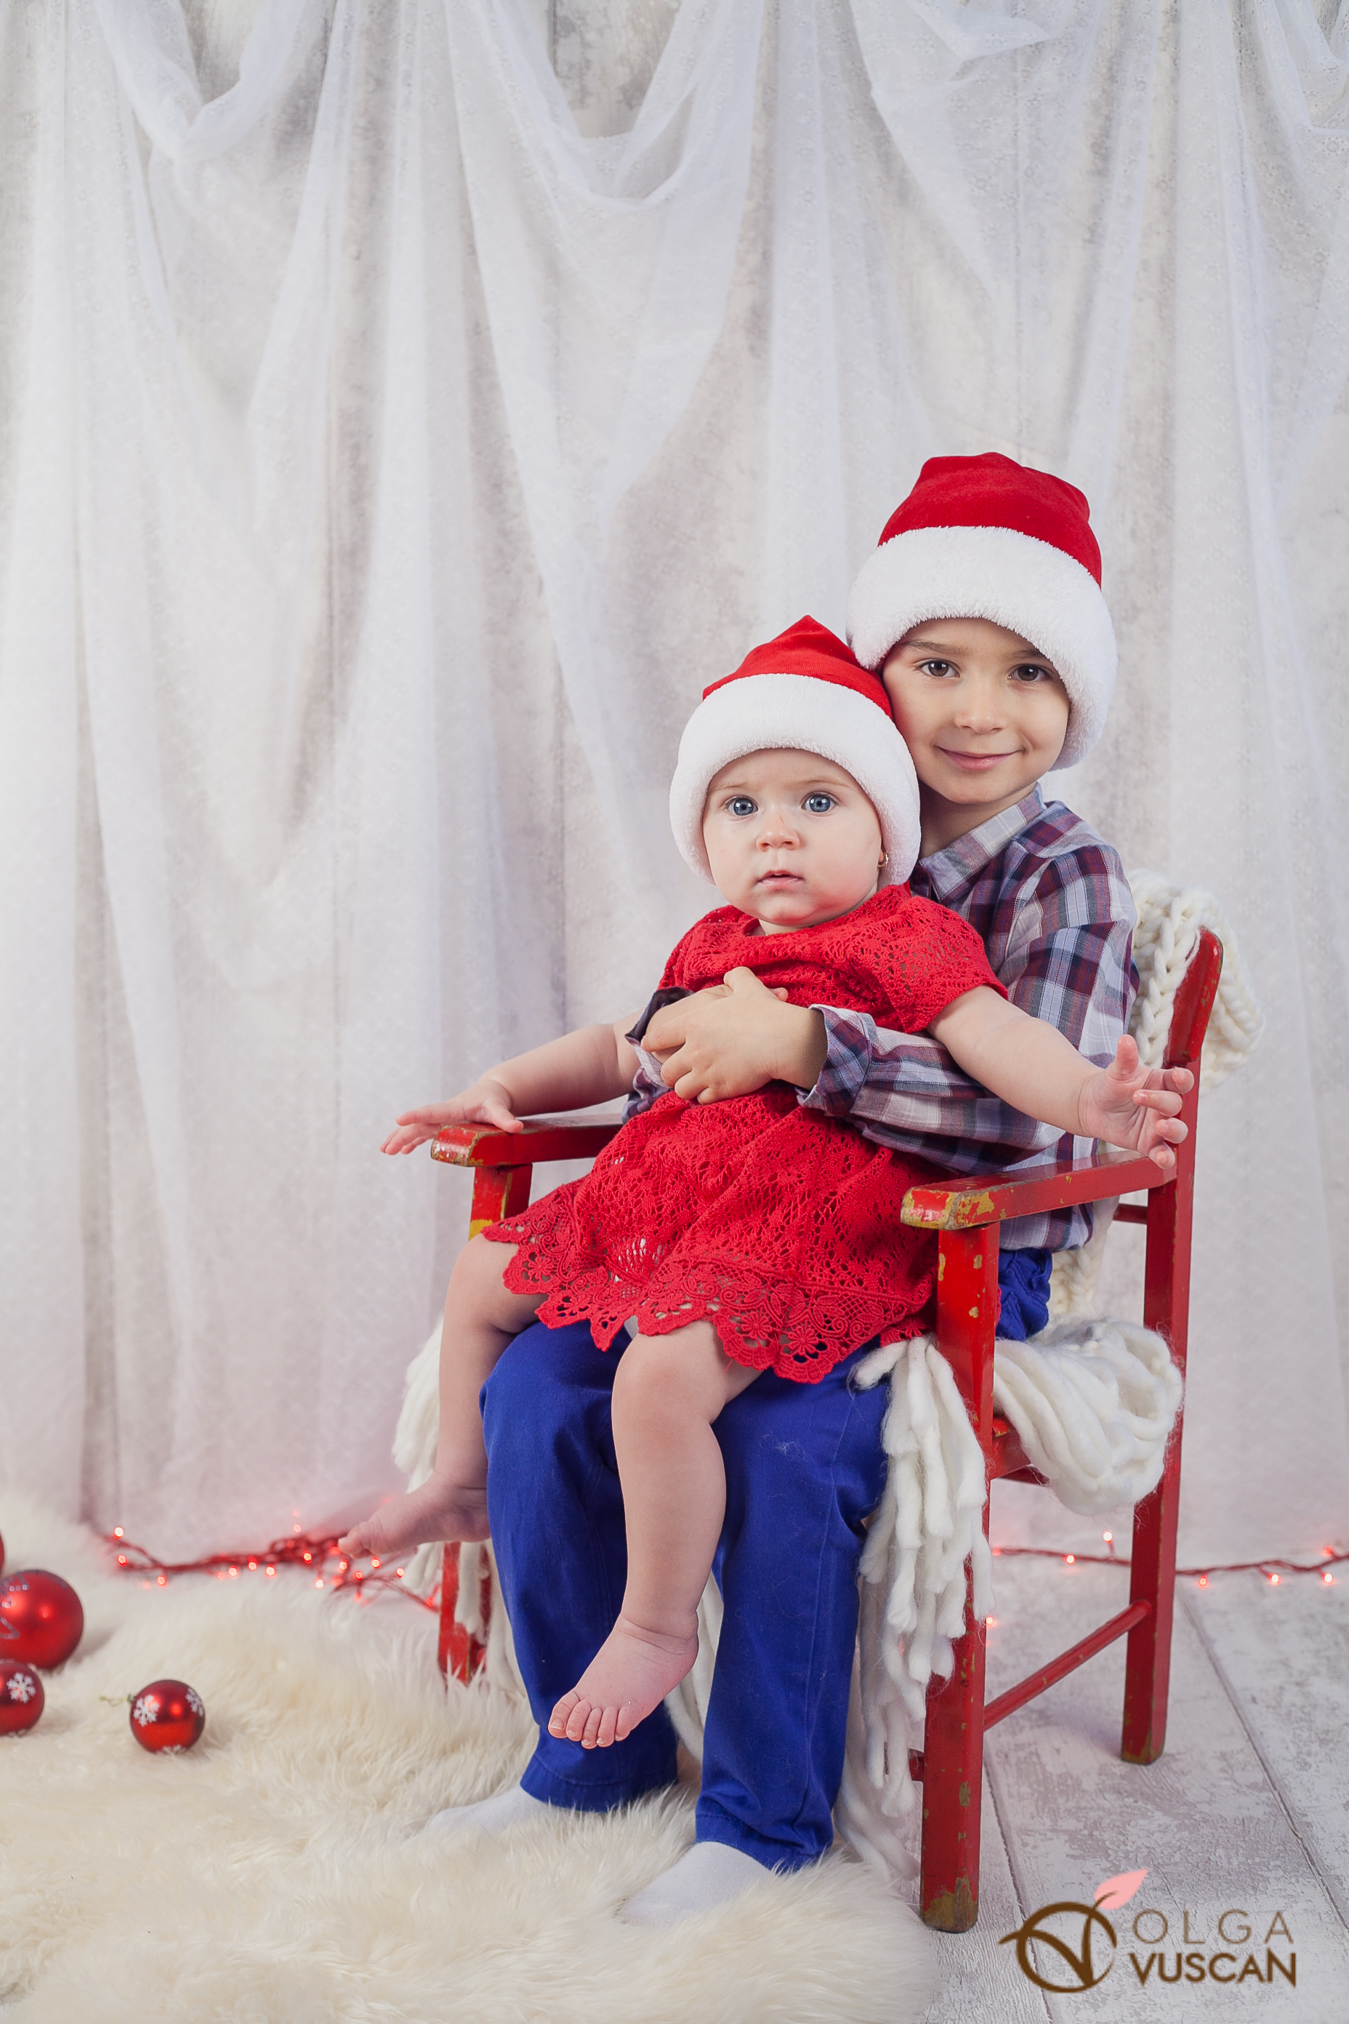 brother and sister_Christmas themed photo session by Olga Vuscan